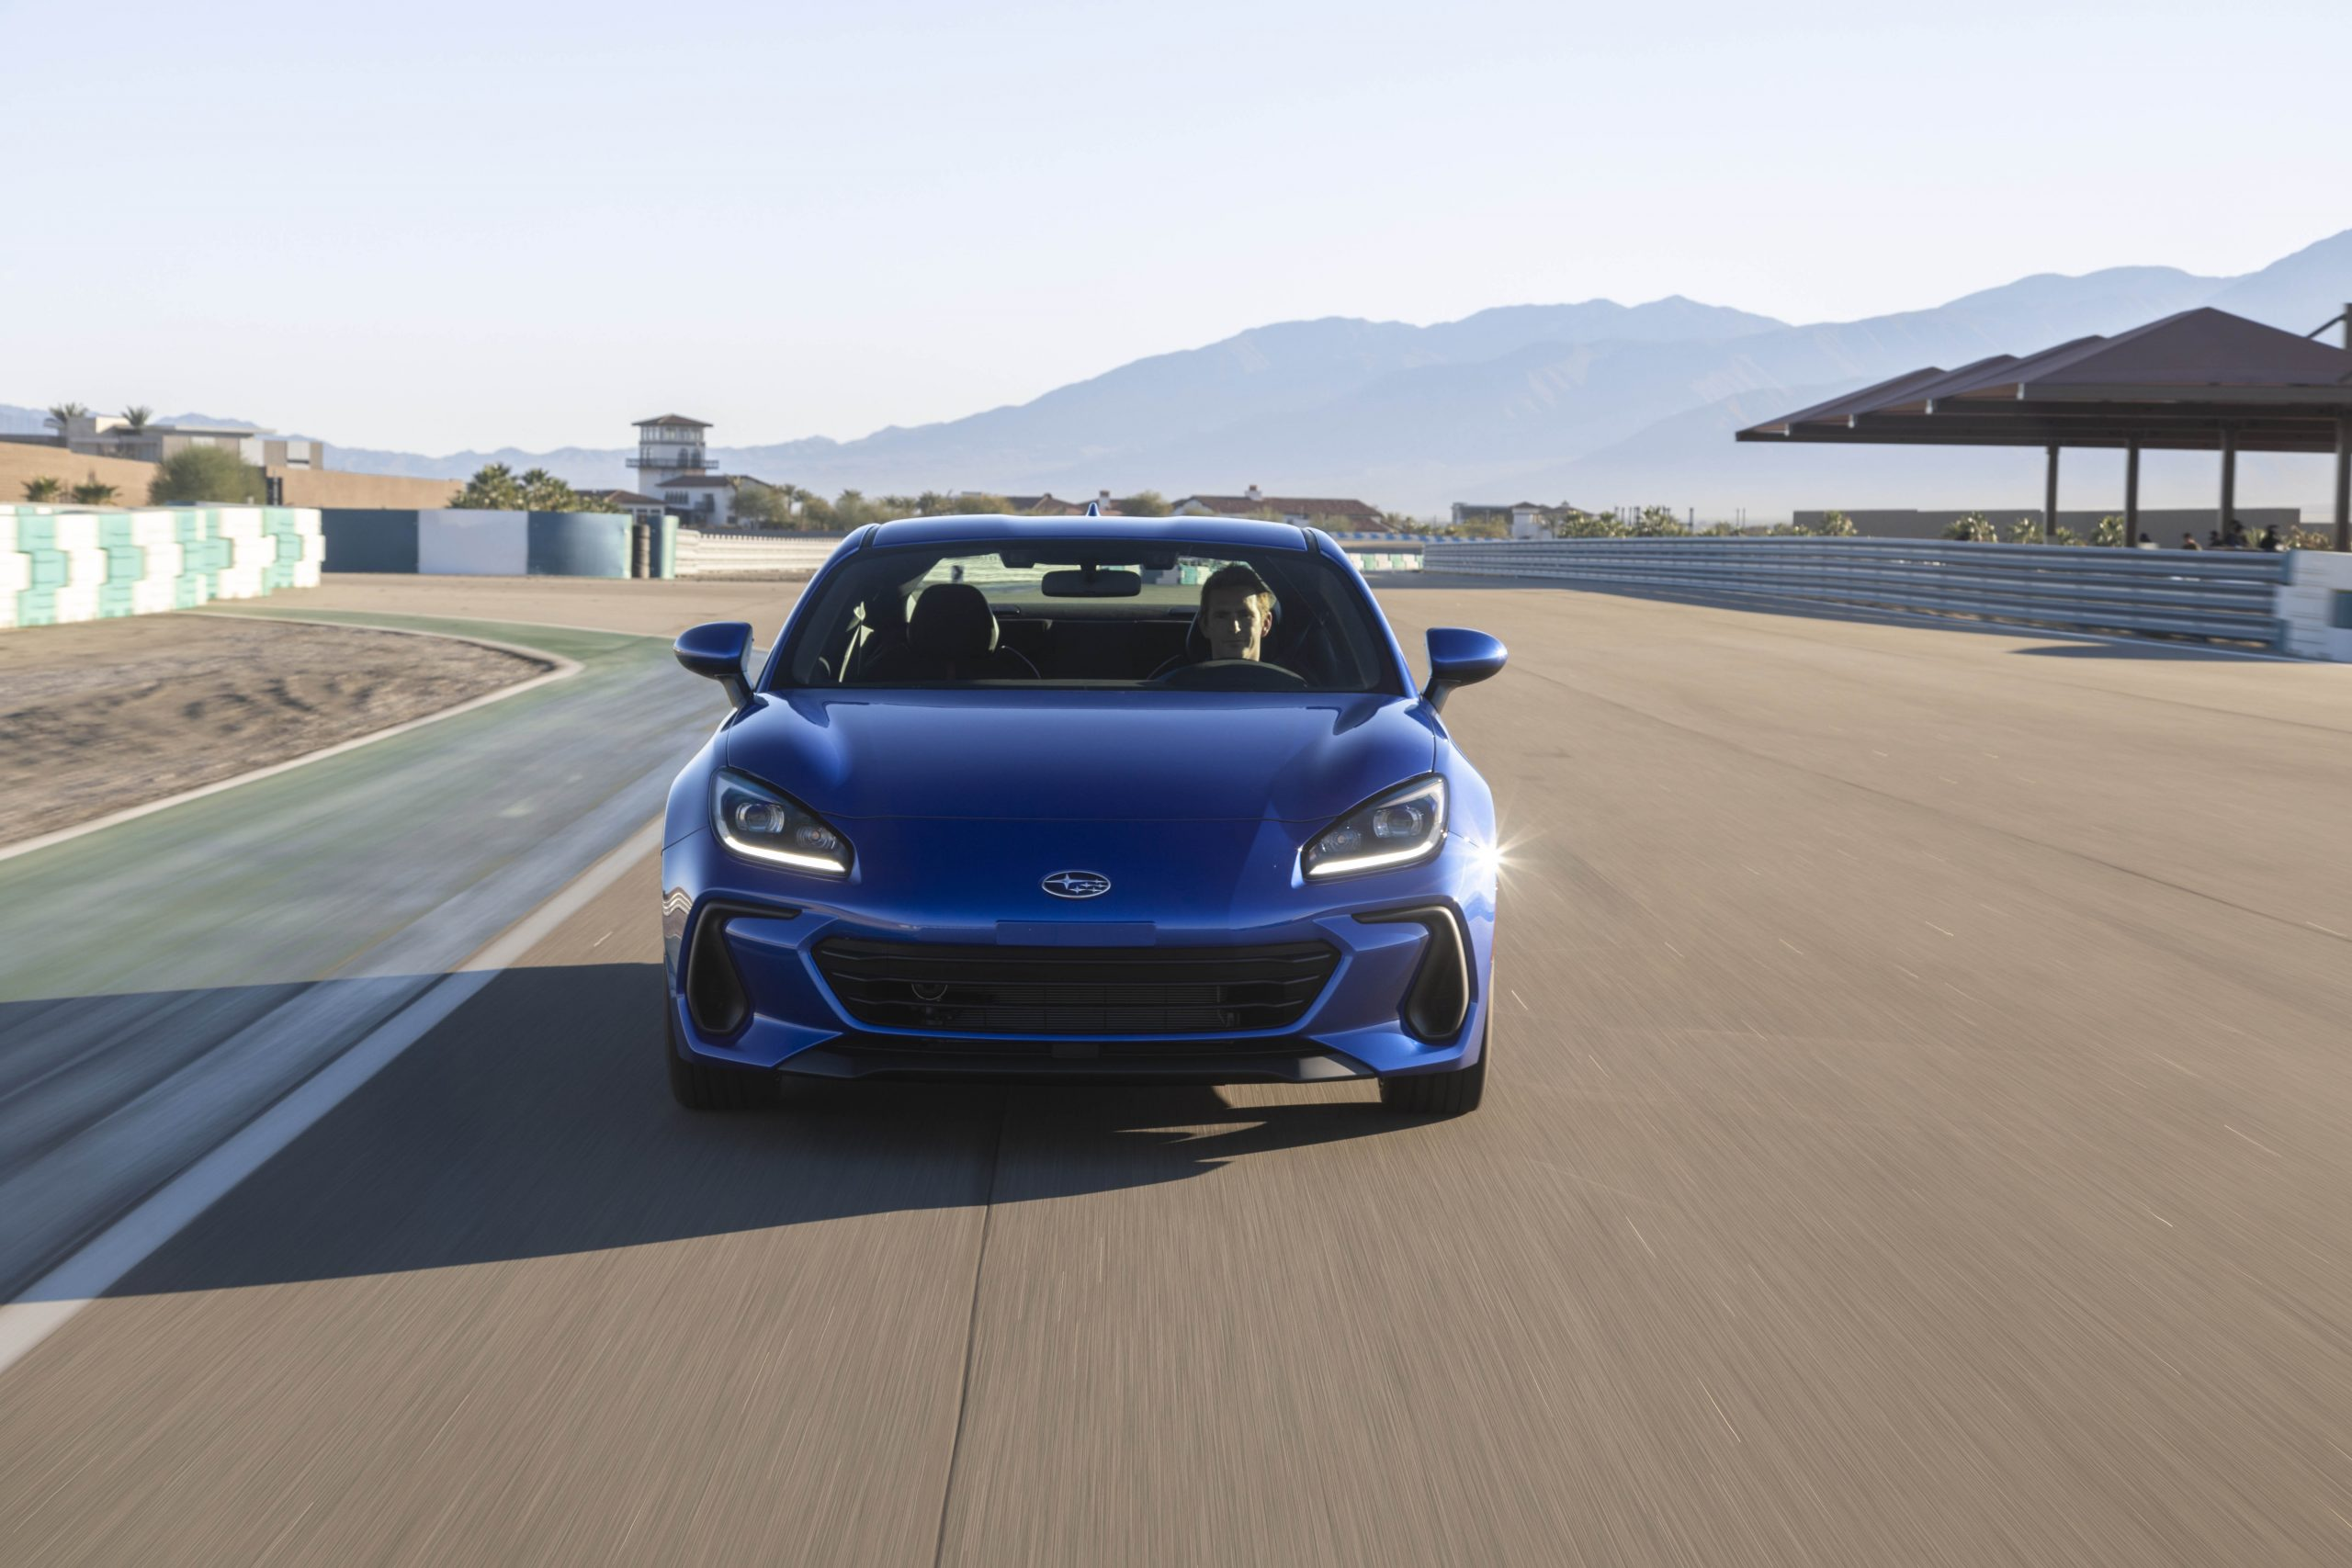 New 2022 Subaru BRZ front track action